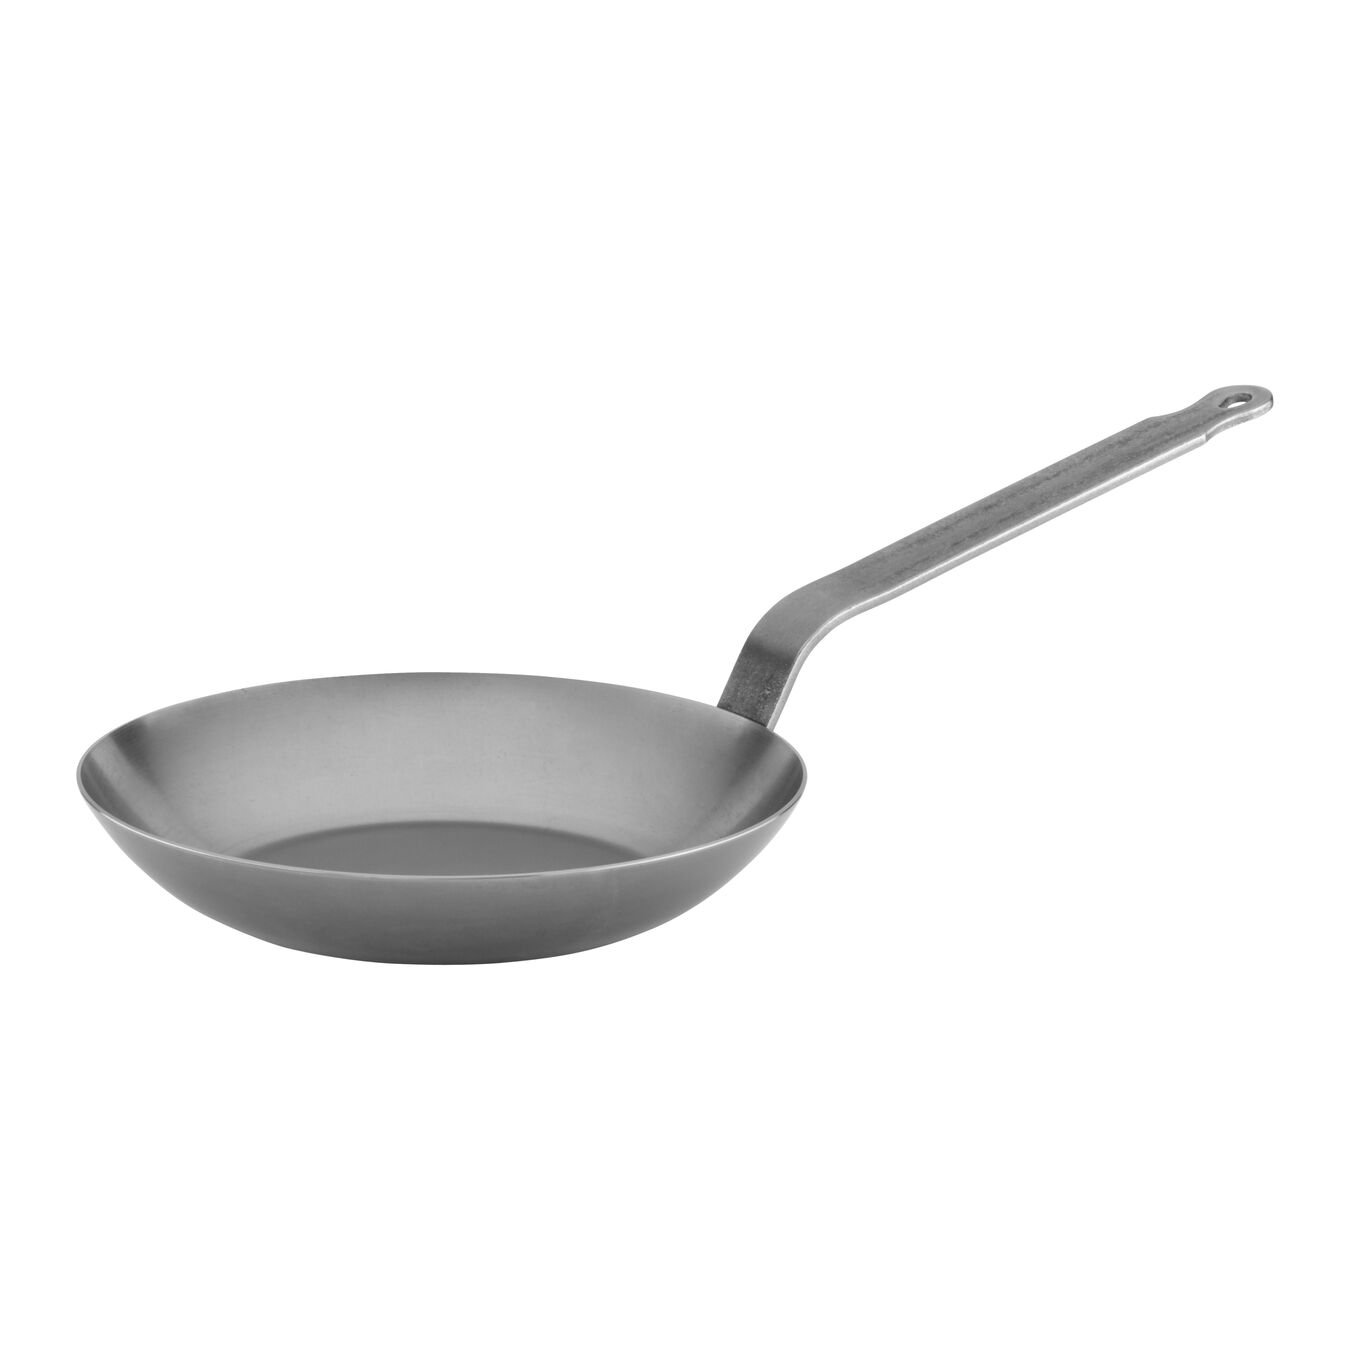 24 cm / 9.5 inch Carbon steel Frying pan,,large 2